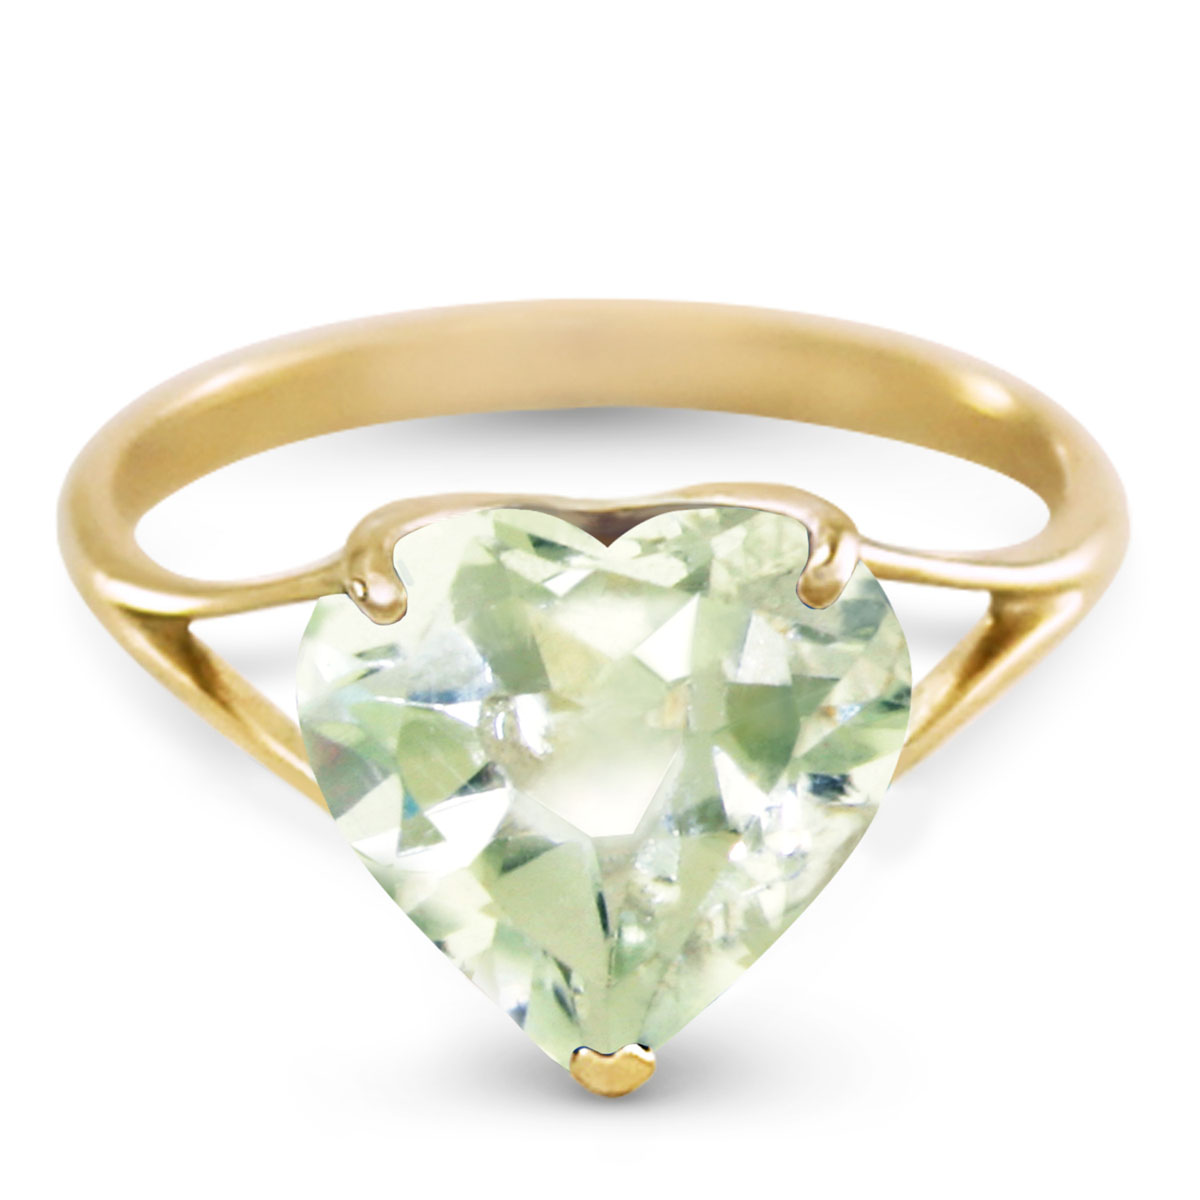 Green Amethyst Large Heart Ring 3.1 ct in 18ct Gold